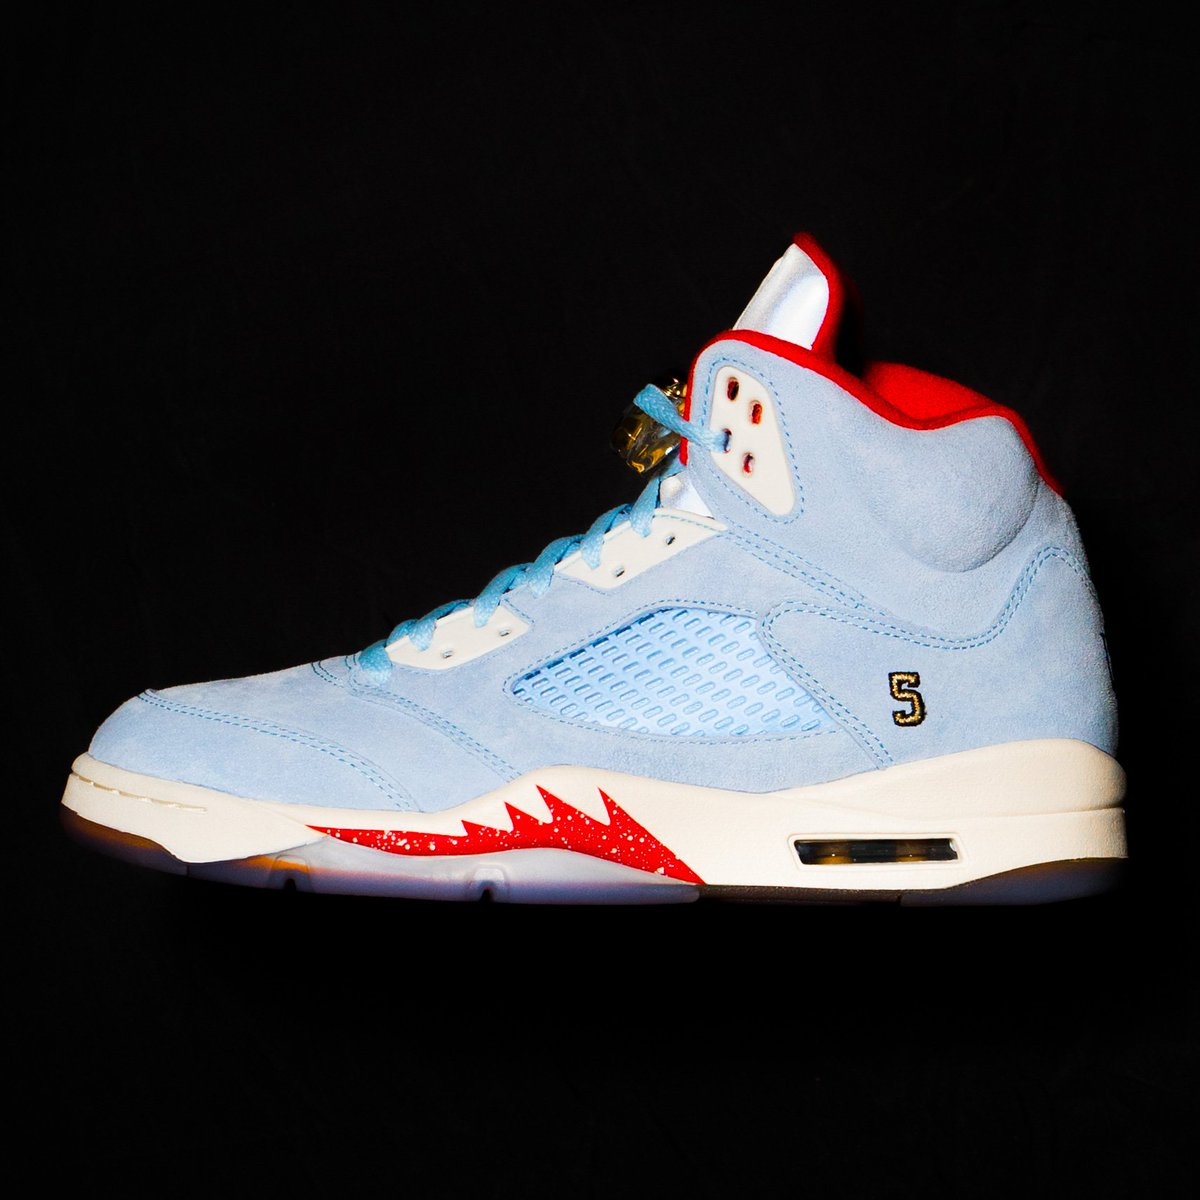 """67f0d1fe2d80 TrophyRoomStore x Jordan 5 Retro """"Ice Blue"""" official images Limited to  7"""